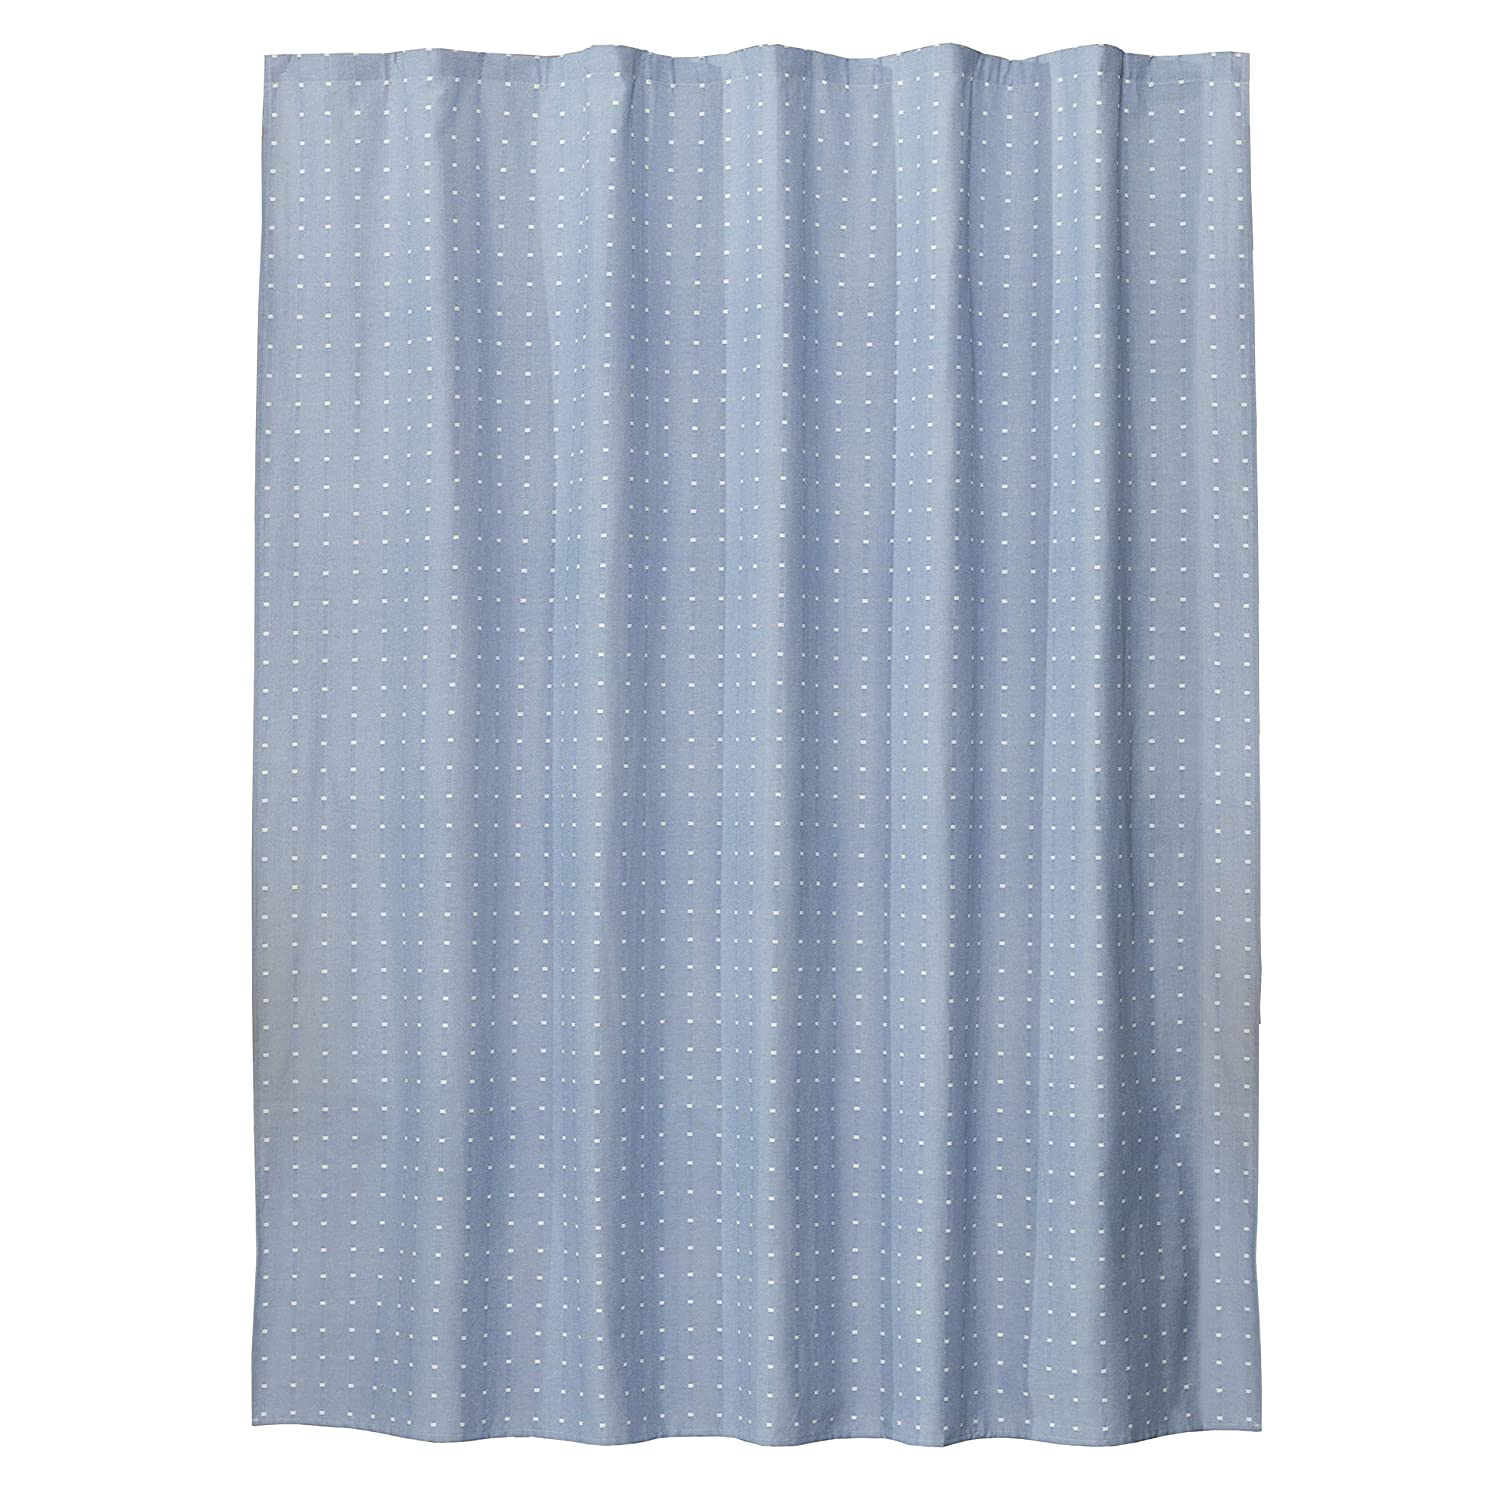 SKL Home by Saturday Knight Ltd Swag Circles Fabric Shower Curtain Blue